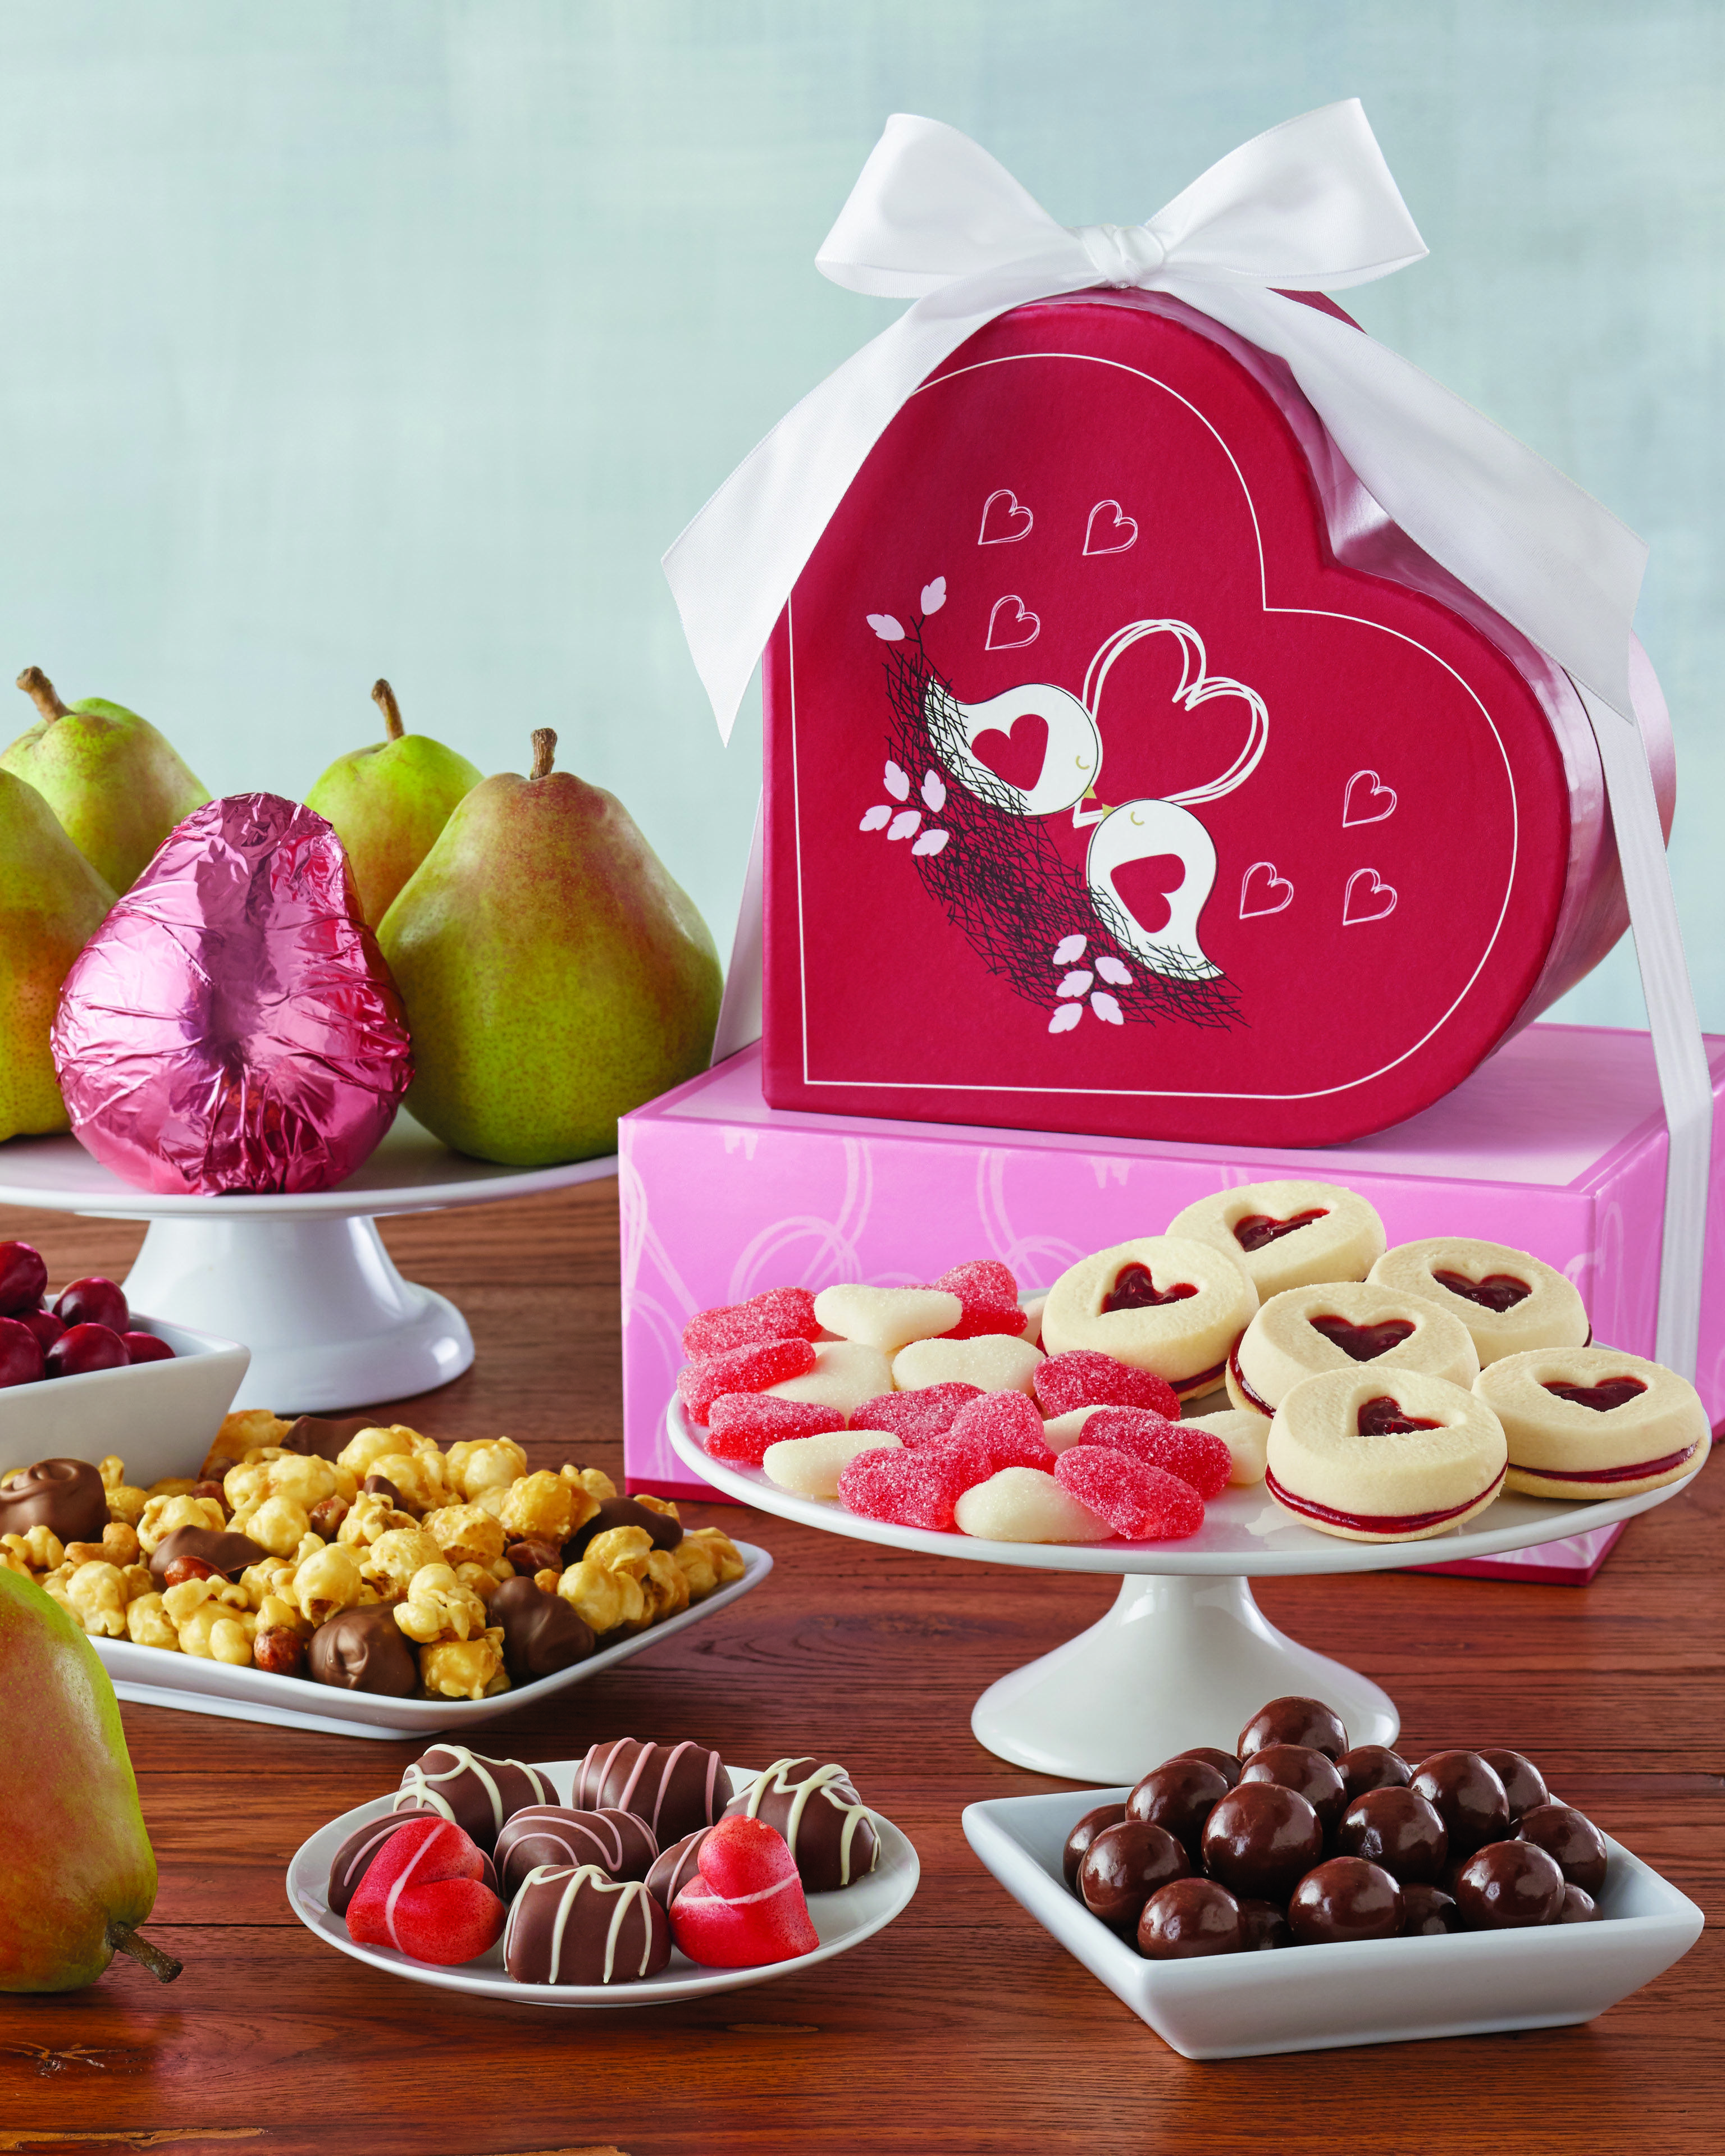 Valentine S Day Sweets All Tied Up With A Bow This Gourmet Gift Comes With Valentine S Day Shortbrea Valentine S Day Gift Baskets Gourmet Gifts Delivery Gifts